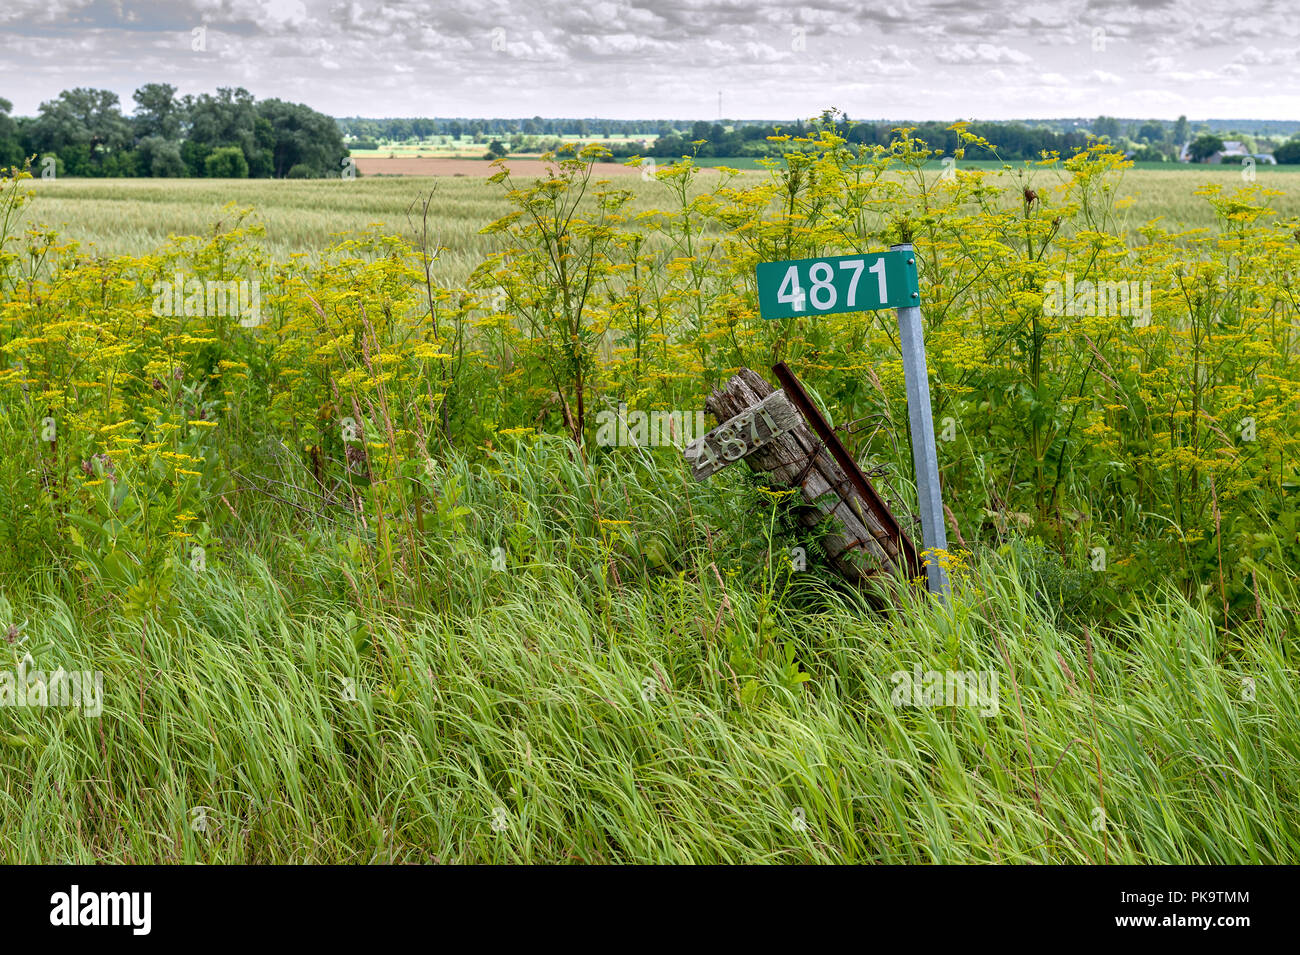 decaying fence post and house number next to new metal address post and number - Stock Image